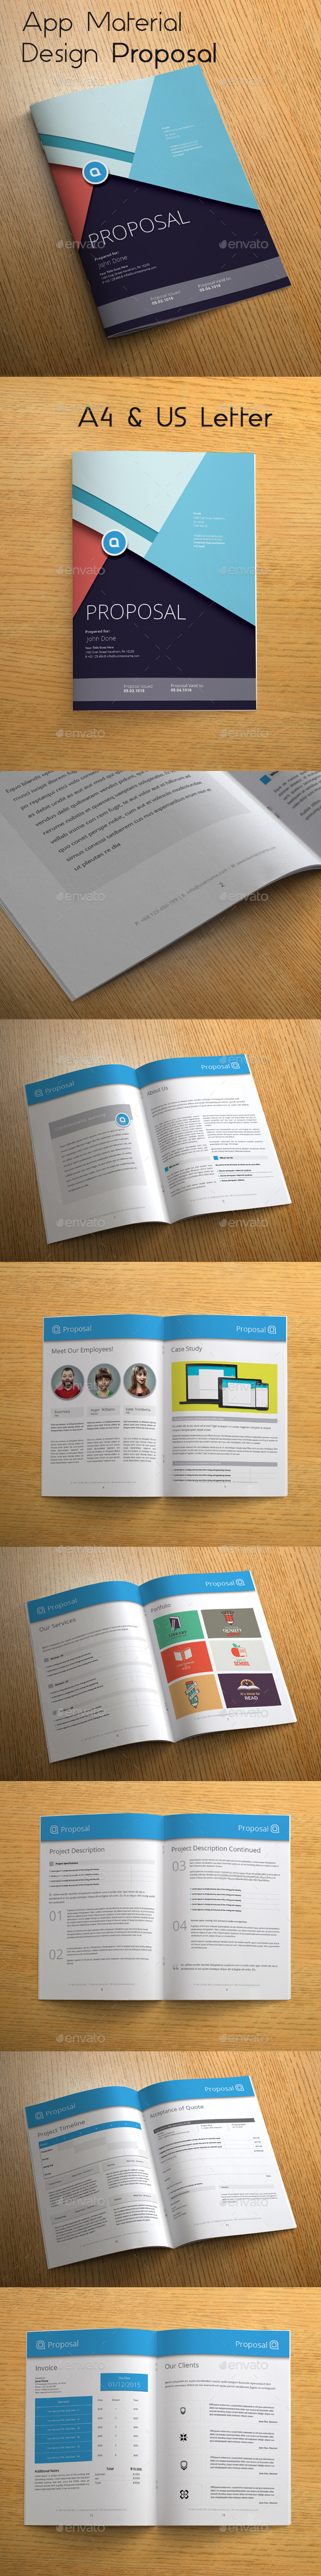 GraphicRiver App Material Design Proposal 10679453